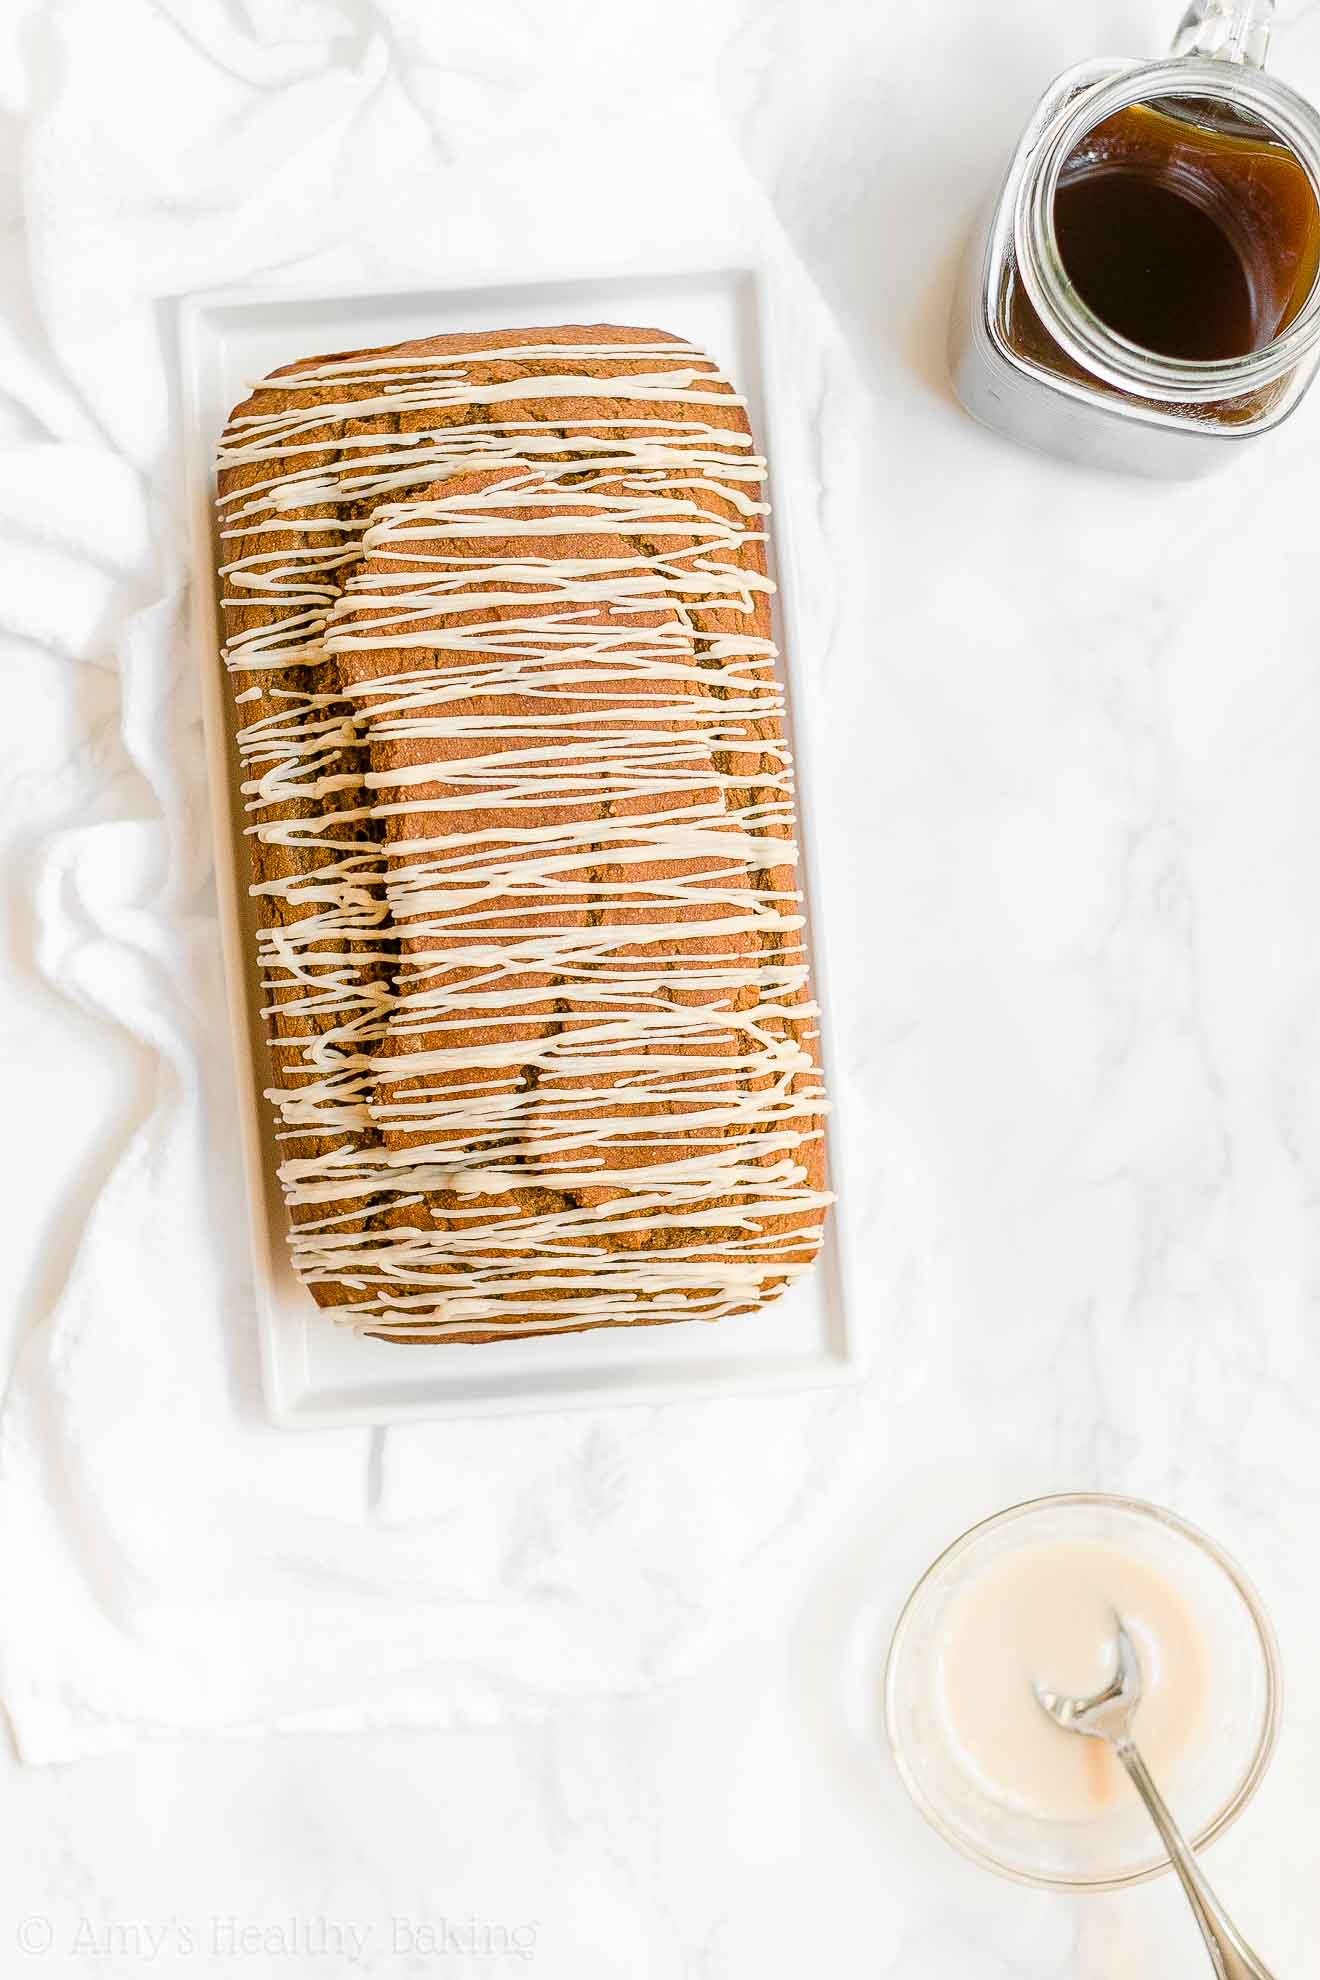 Easy Healthy Homemade Low Sugar Pumpkin Spice Latte Pound Cake